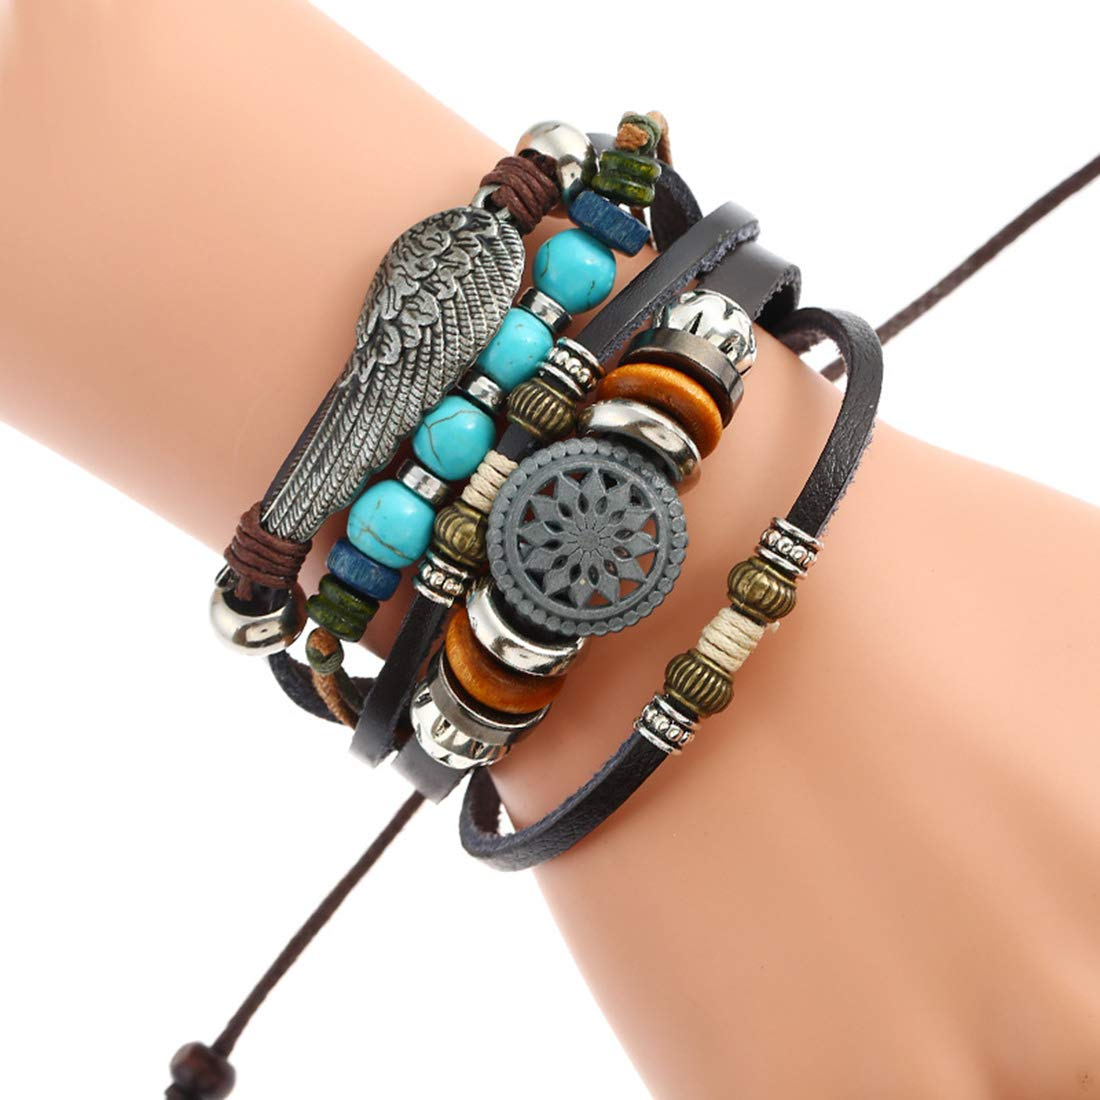 JuSir Multilayer Big Sun & Feather Shape Bracelet Braided Beaded Leather Woven Wristband Adjustable Cuff Wrap Bangle